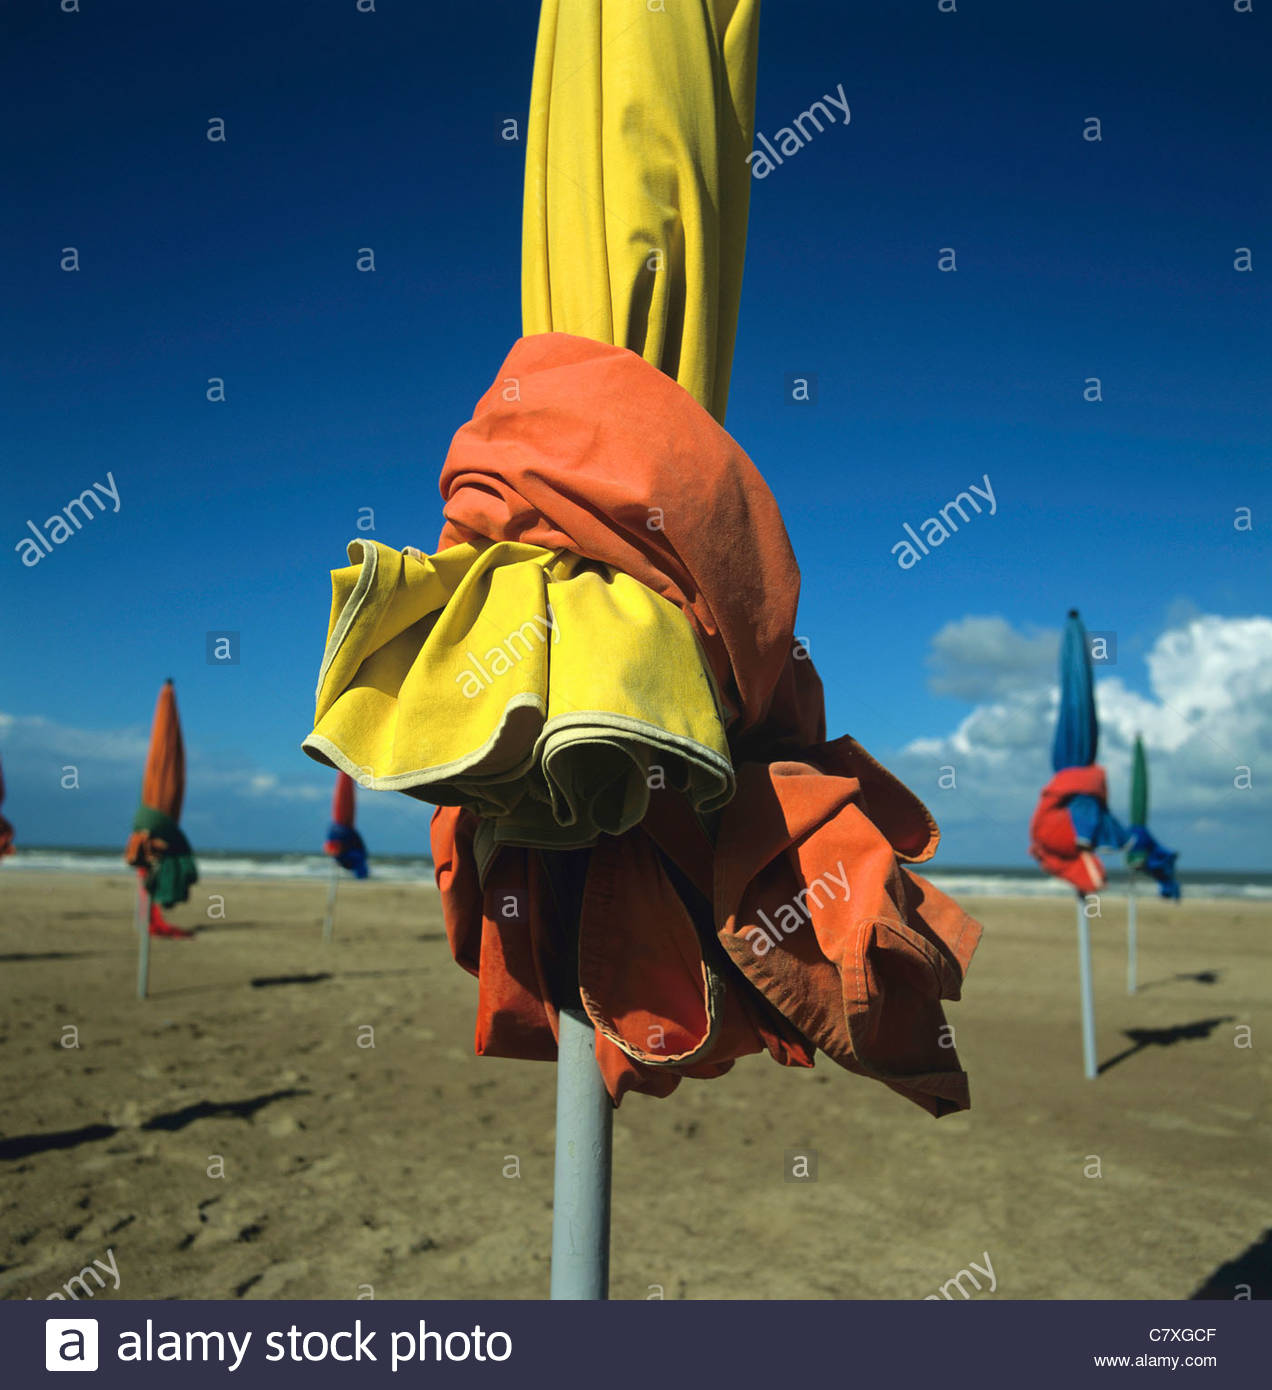 Parasol tied up out of season on beach - Stock Image